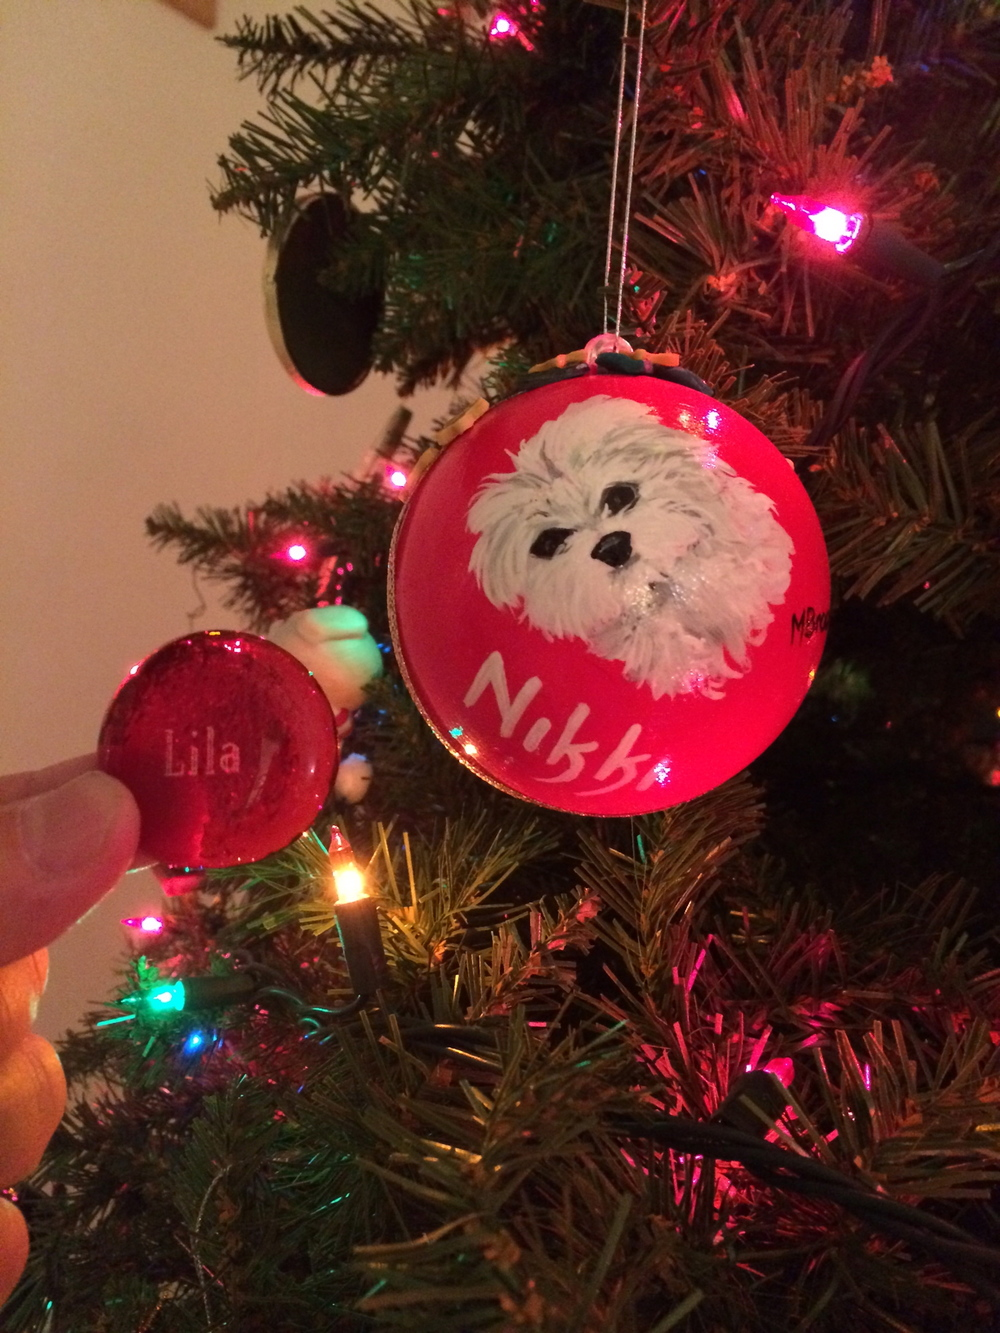 Lila stone by an Aunt Nikki ornament